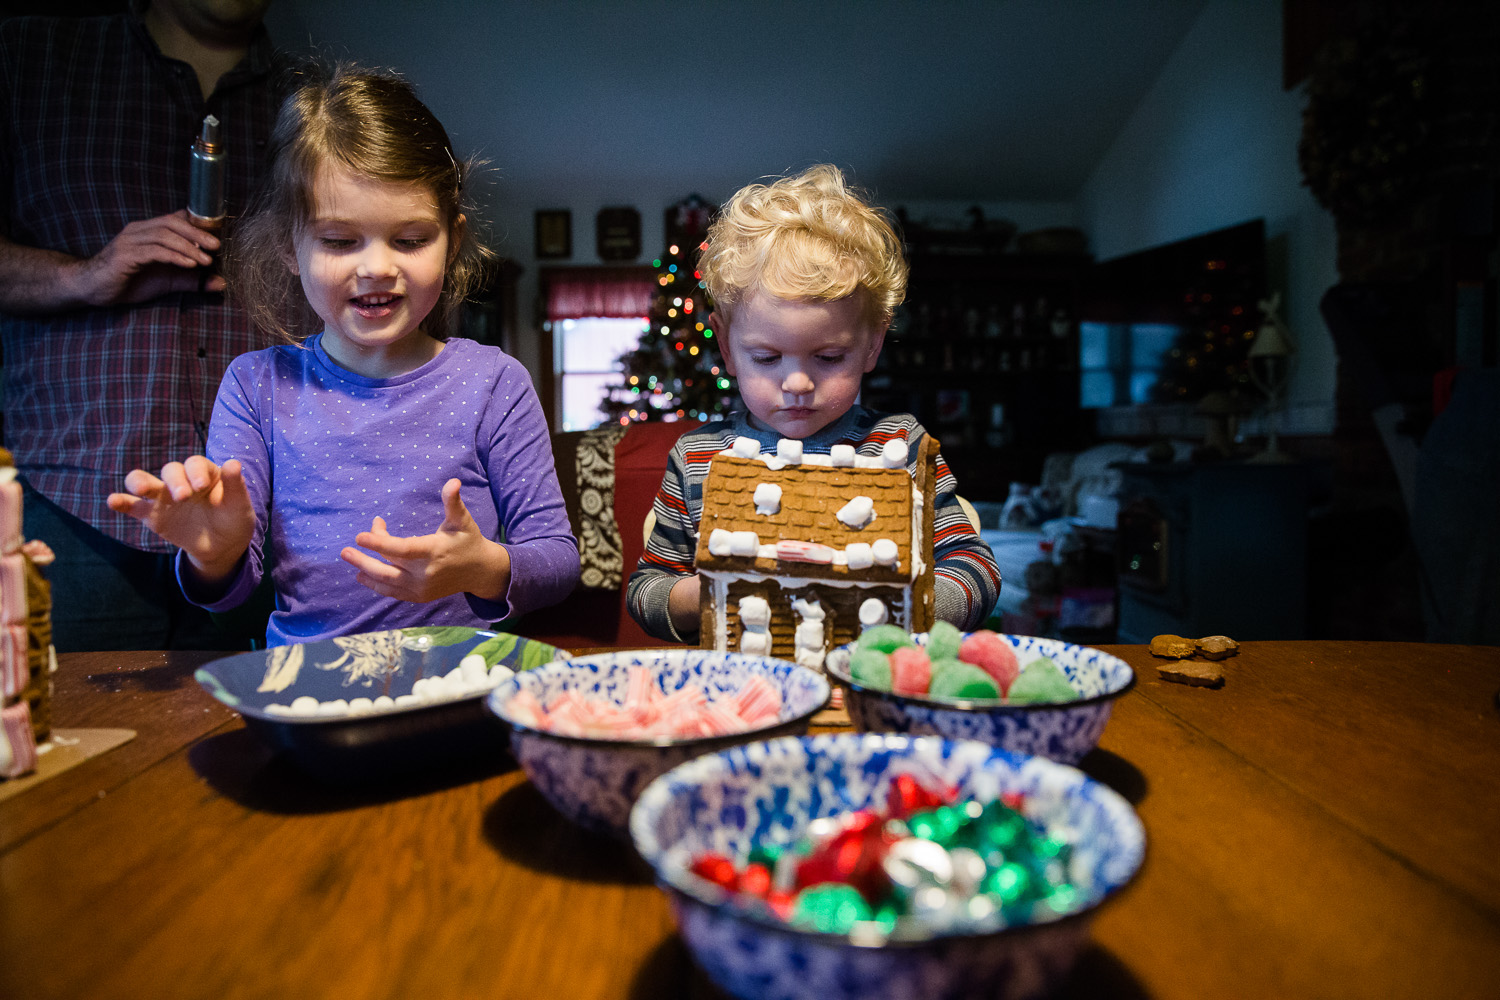 A Holiday traditions photography session in Maryland